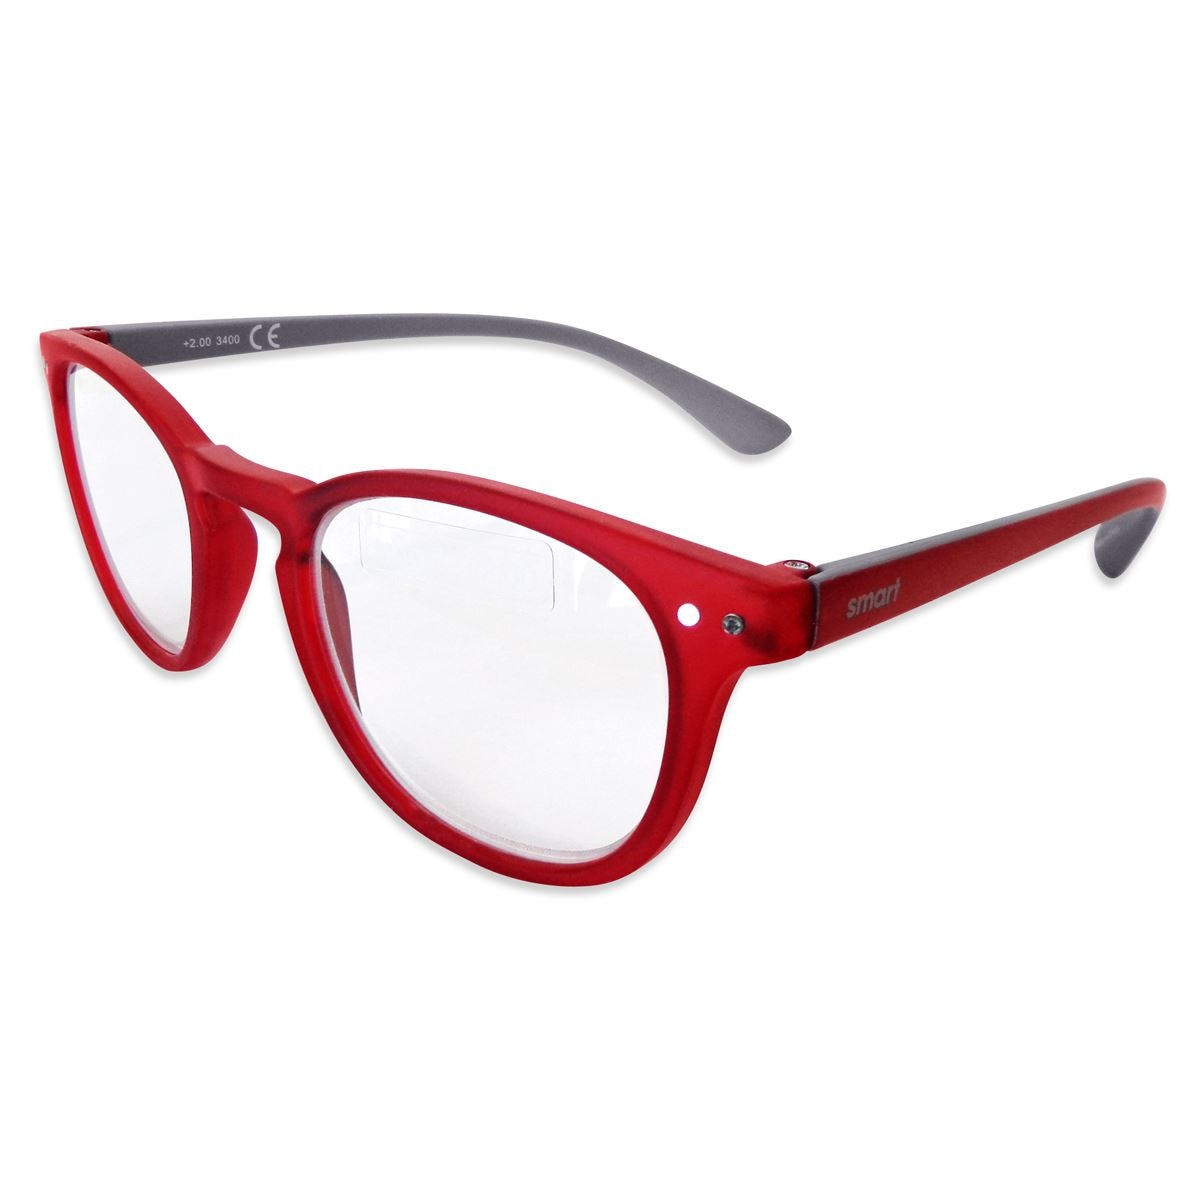 Lente pregraduado.smart Reader round matt red +3.00